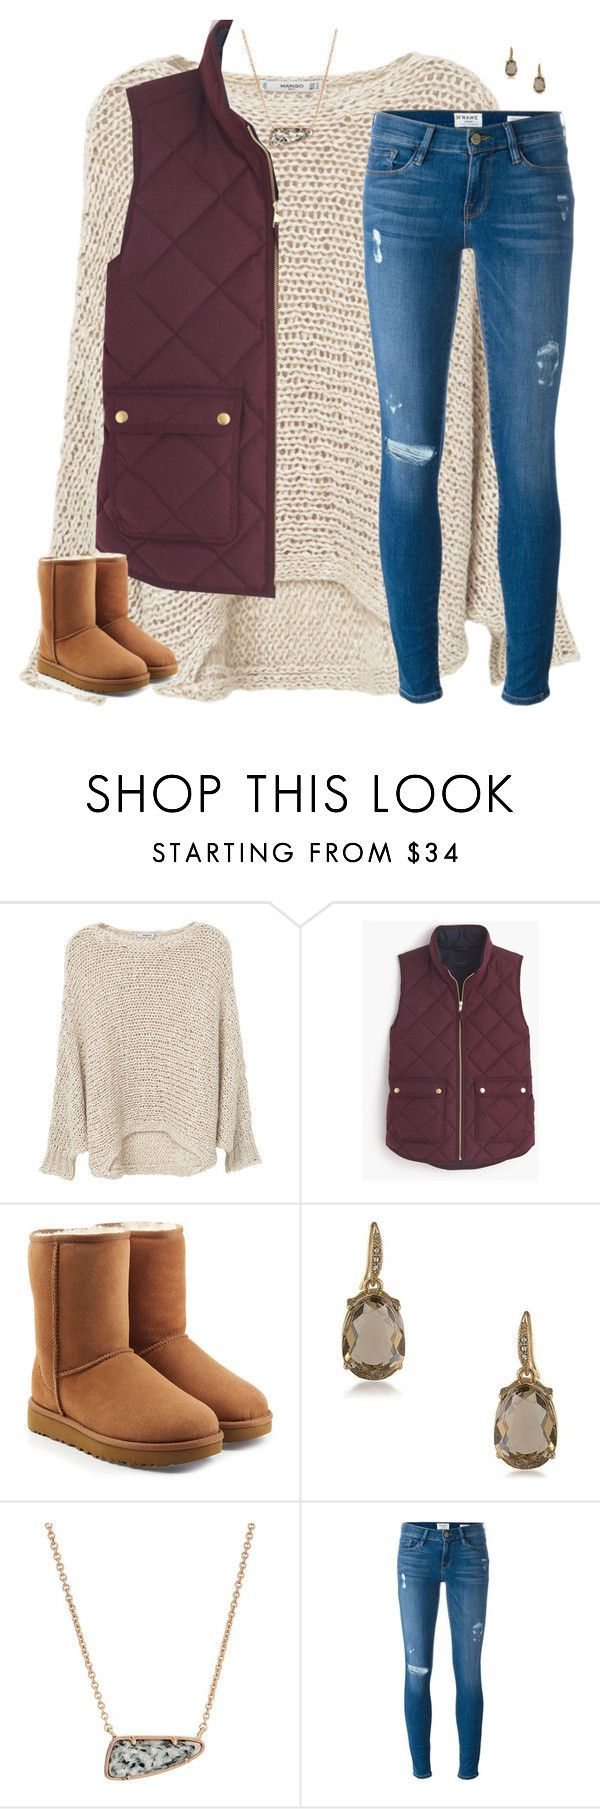 """"""""""" by moseleym ❤ liked on Polyvore featuring MANGO, J.Crew, UGG, Carolee, Kendra Scott and Frame Denim"""